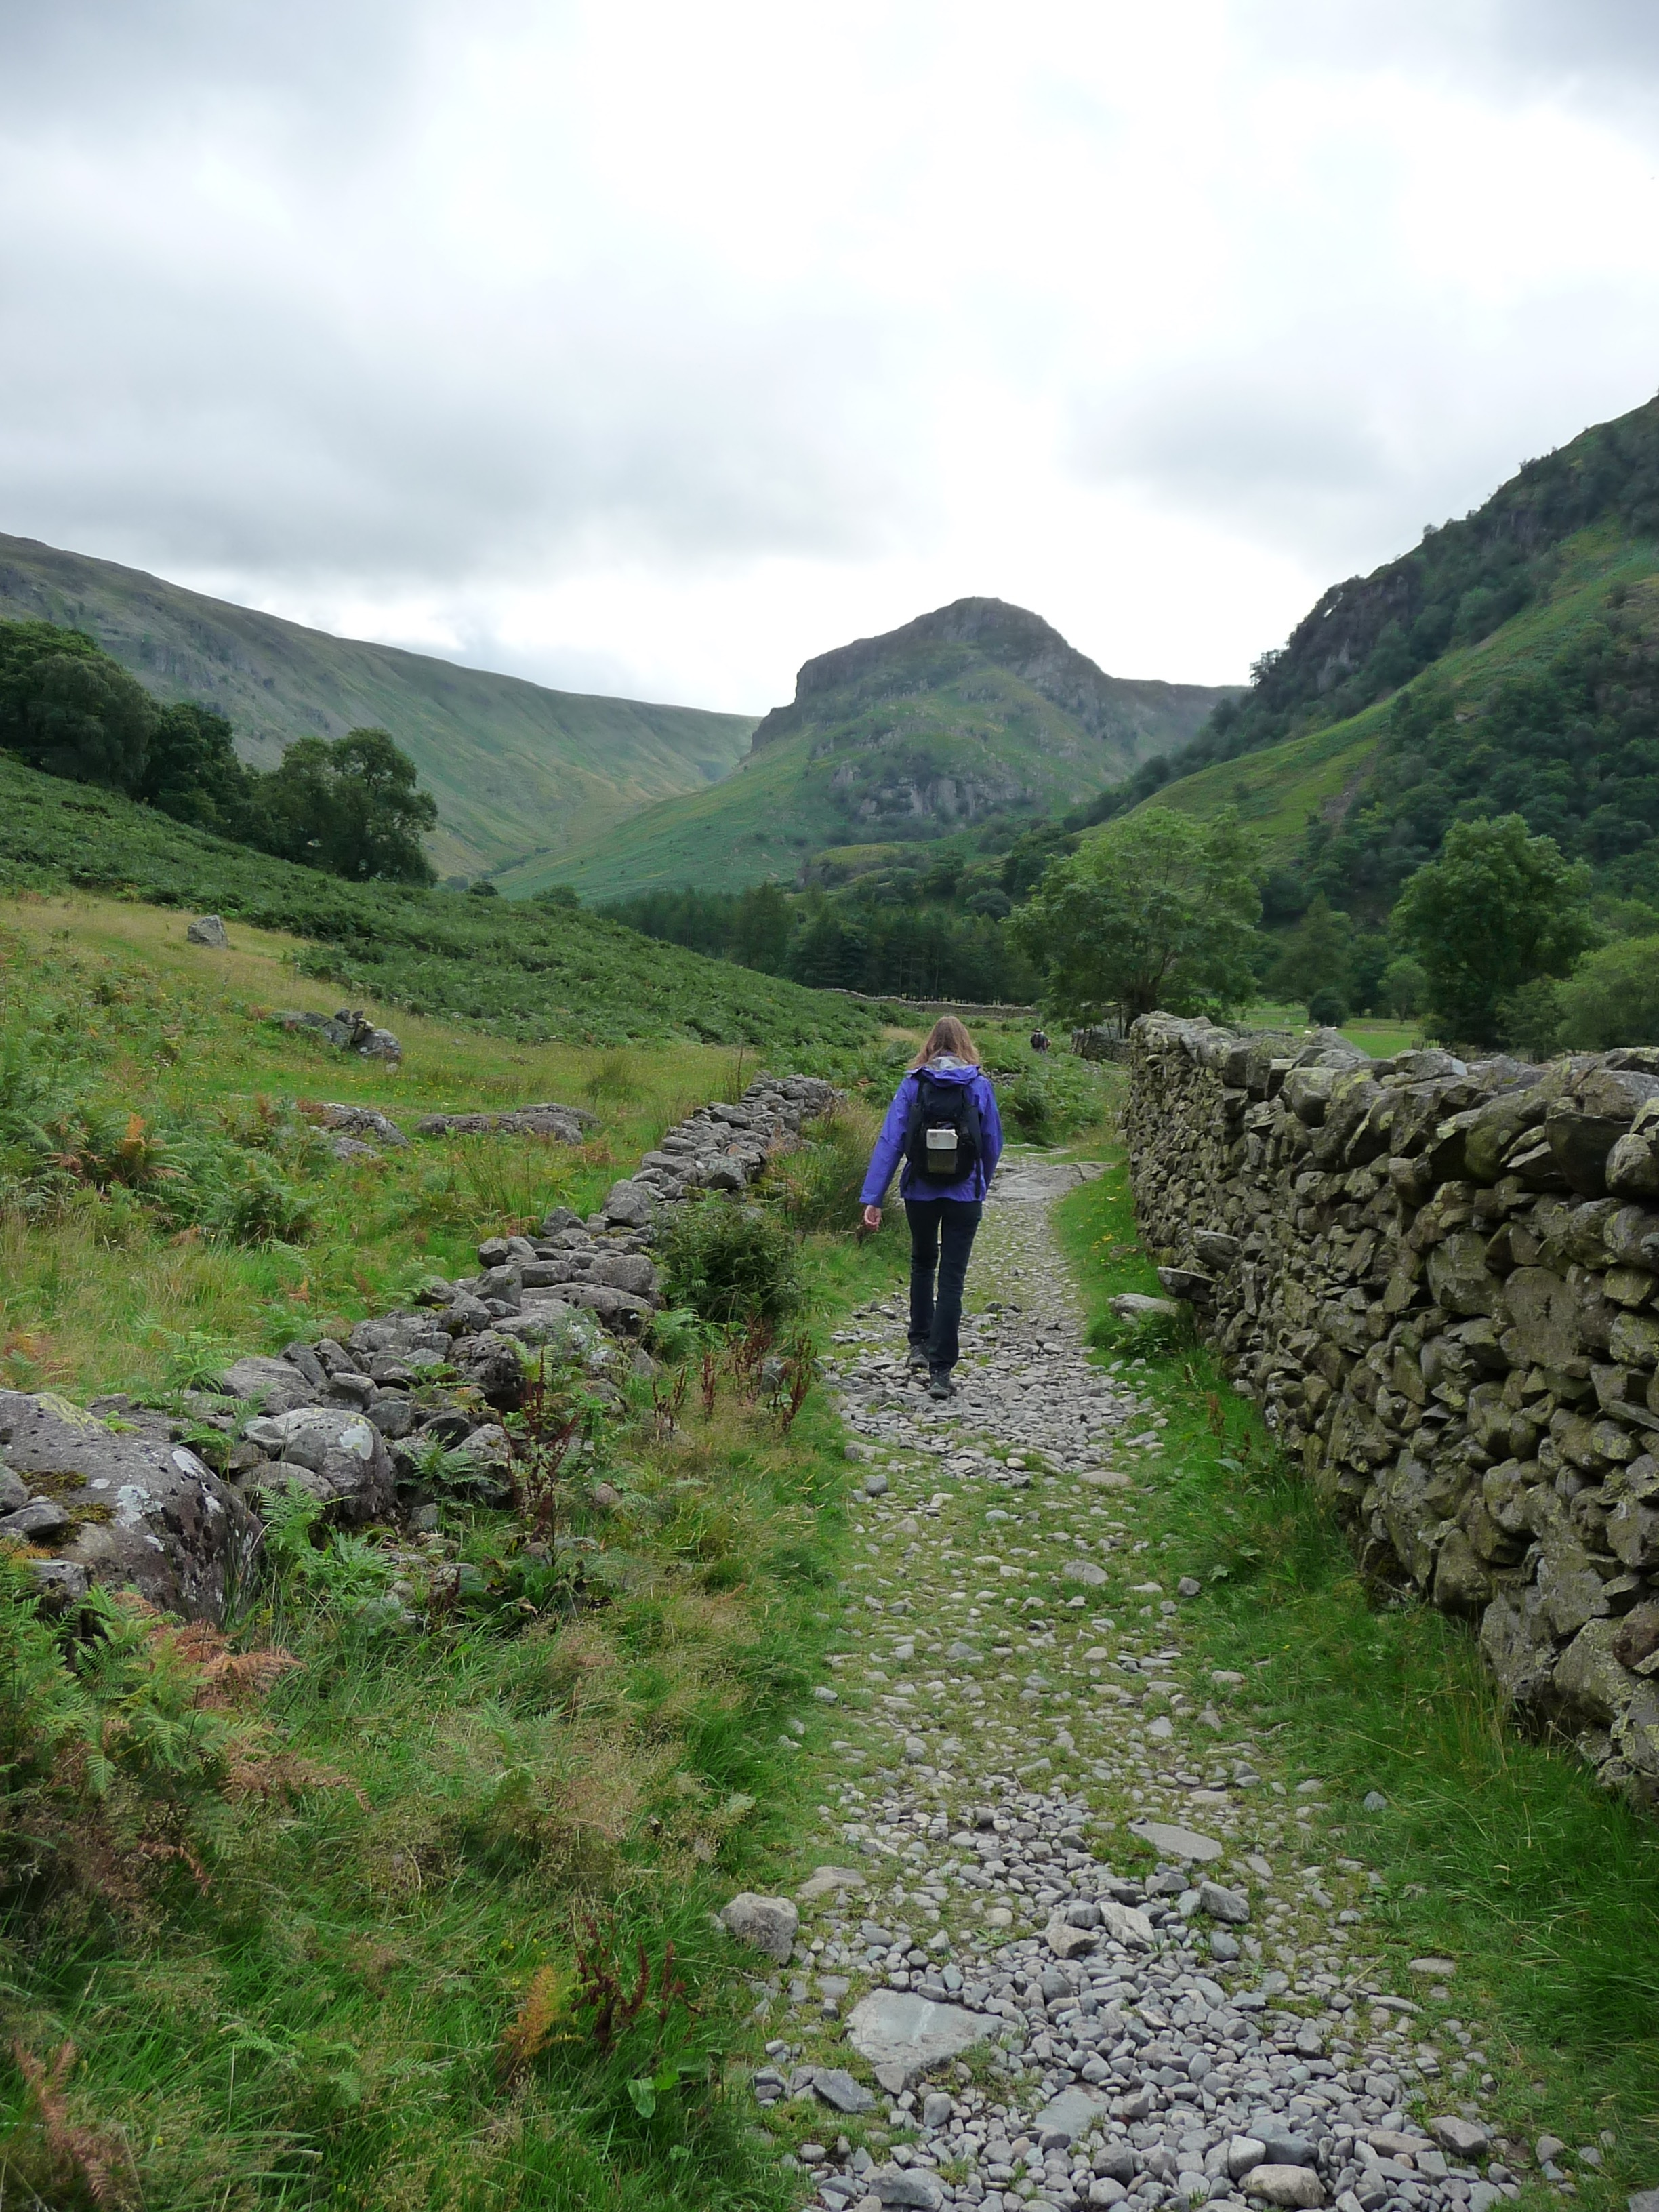 Strolling over the lower slopes